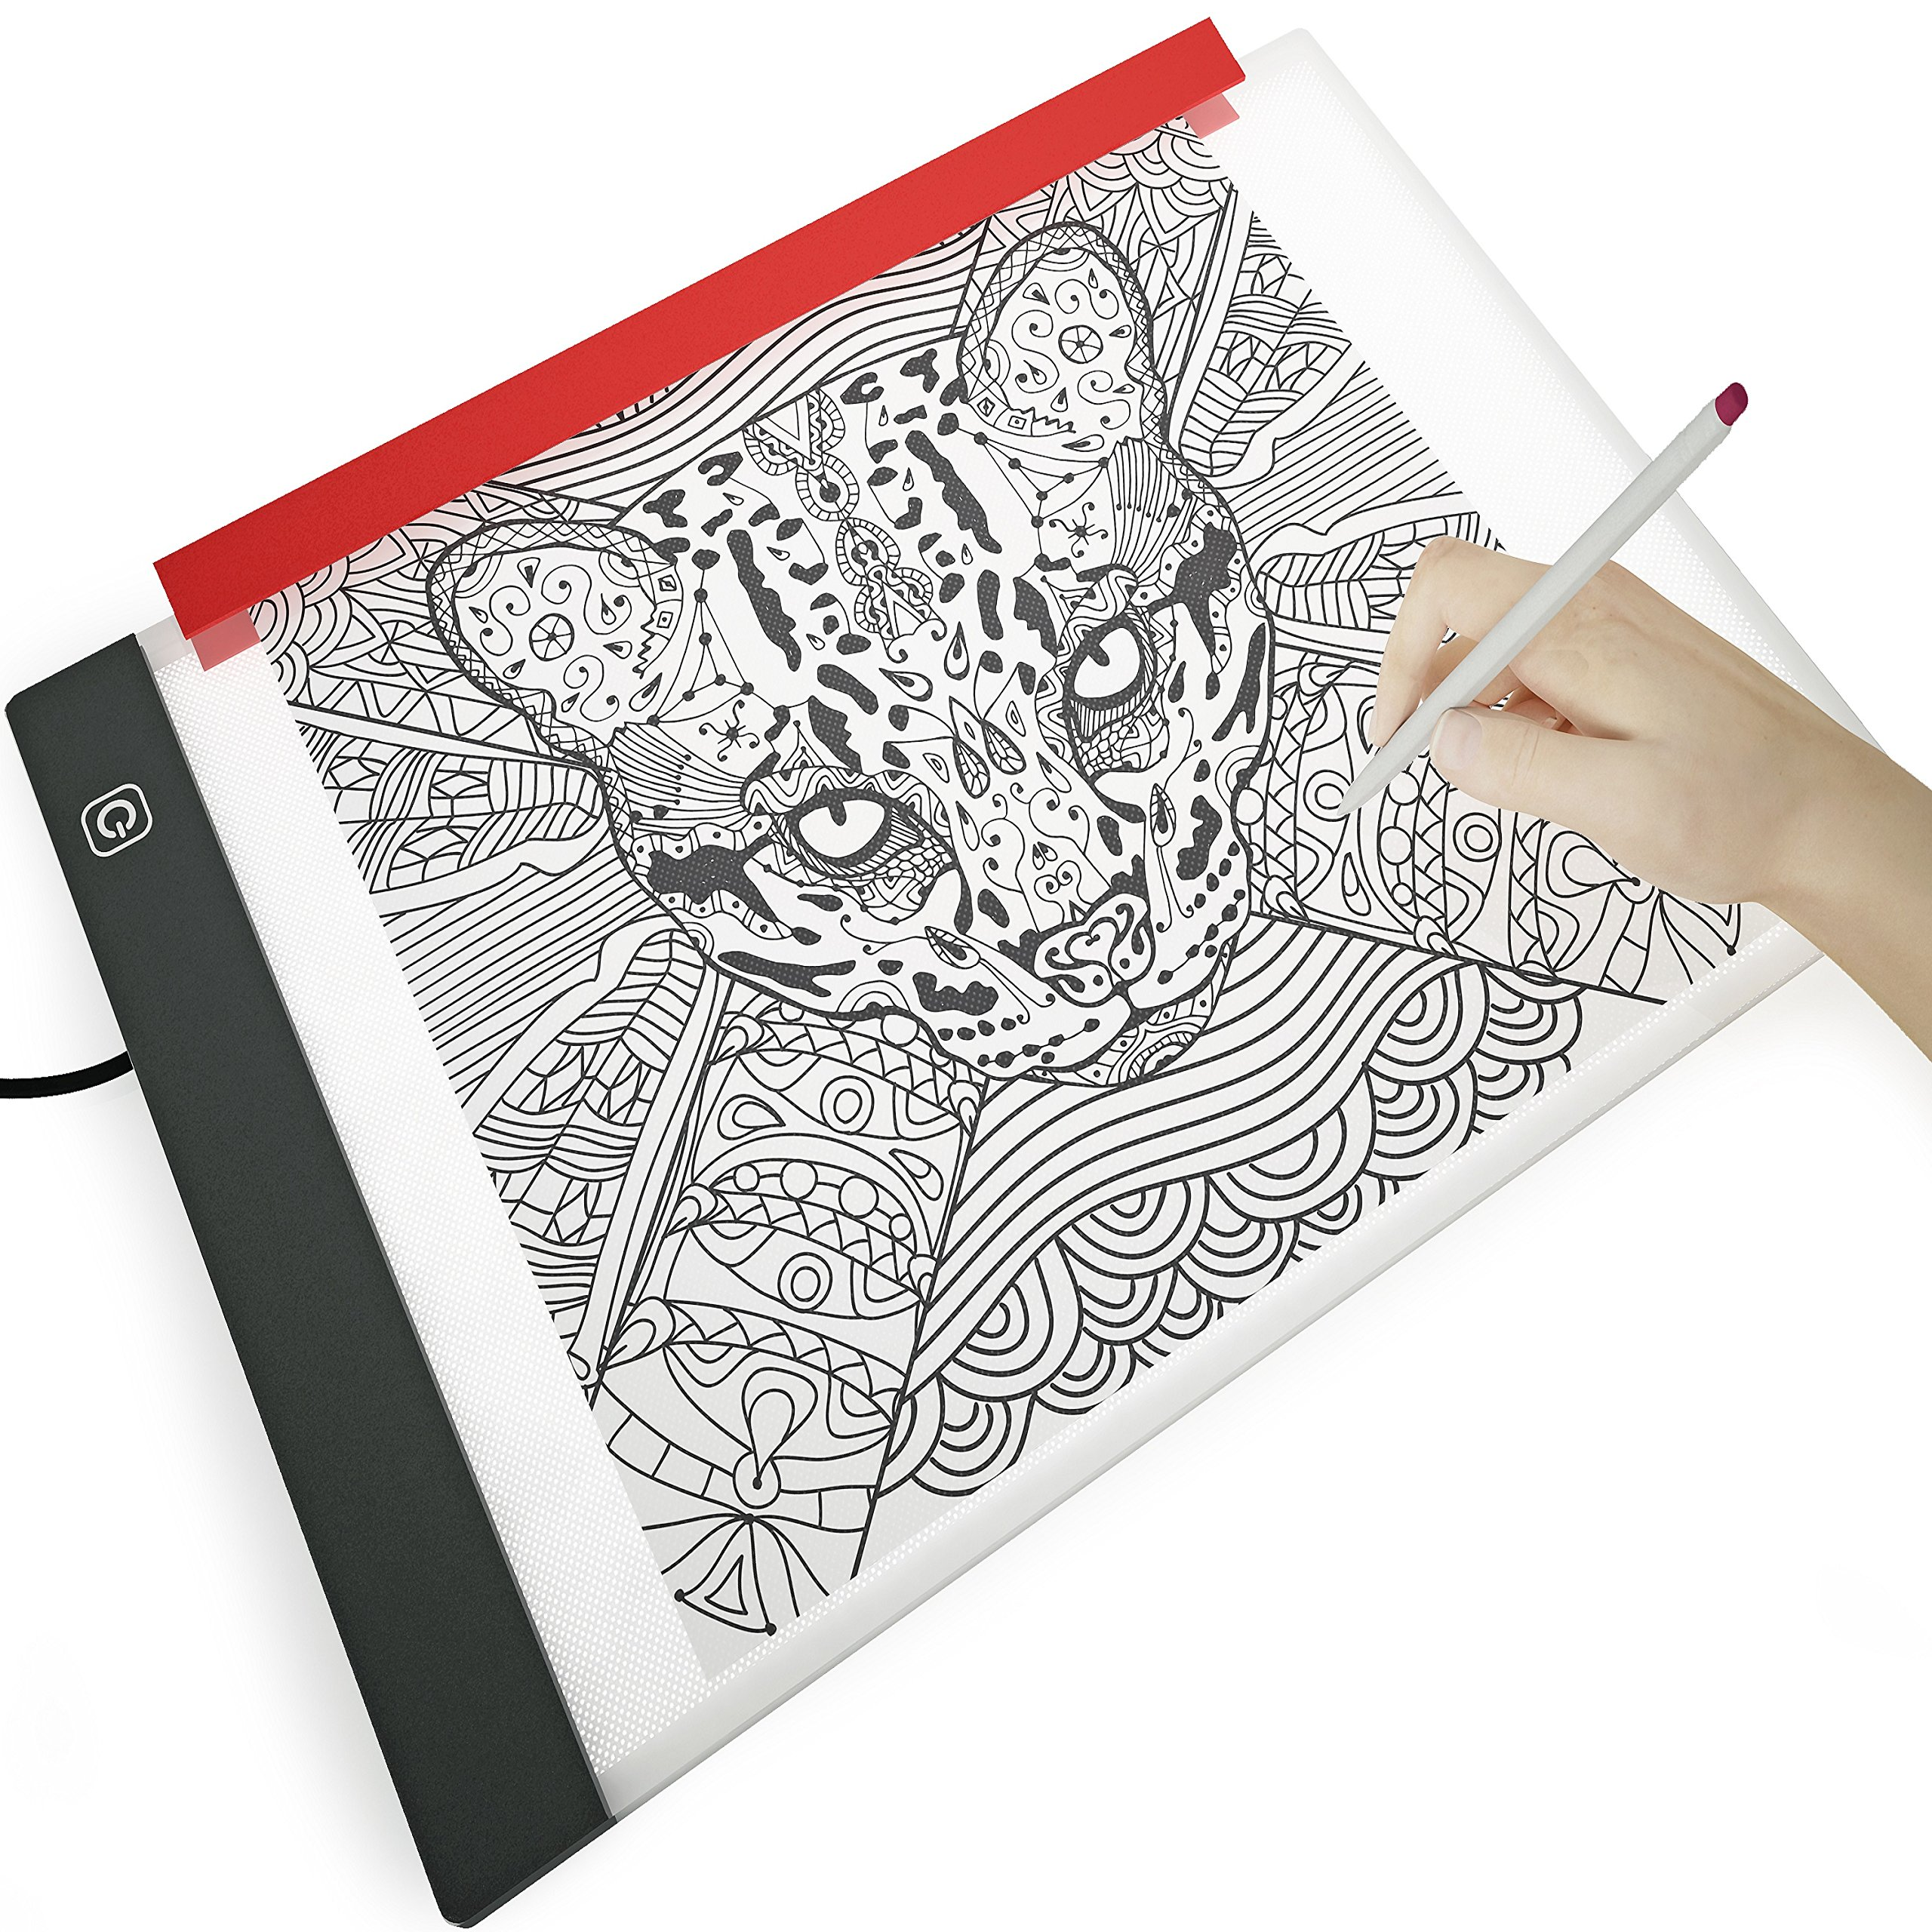 Illuminati Light Box For Drawing and Tracing ~ Comes With A4 Tracing Paper & Holder Clamp ~ Ultra Thin LED Light Pad With Hi-Mid-Low Brightness Control ~ Equipped With Filter To Prevent Eye Fatigue